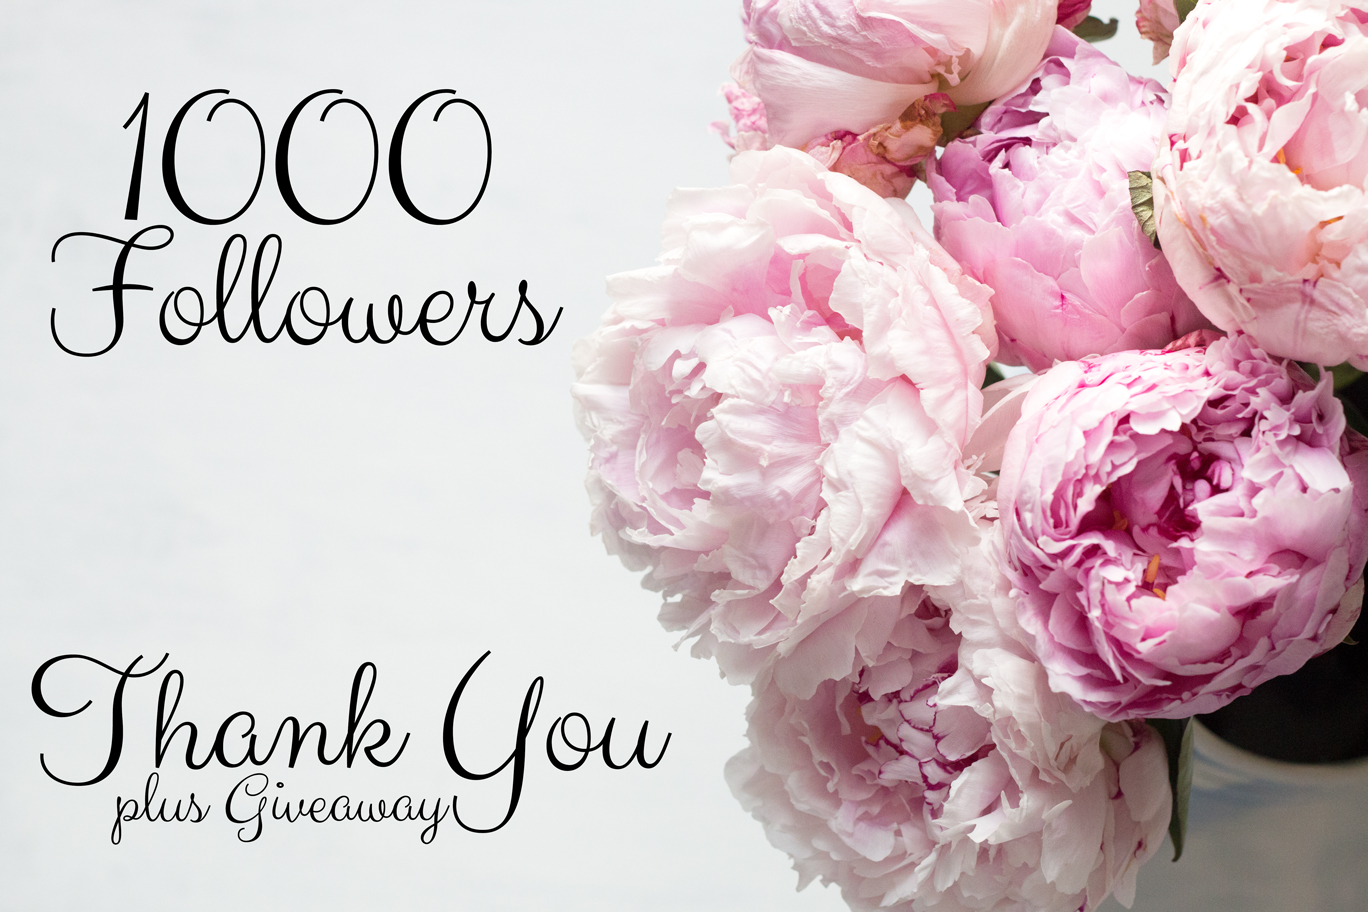 ONE THOUSAND FOLLOWERS: THANK YOU + GIVEAWAY